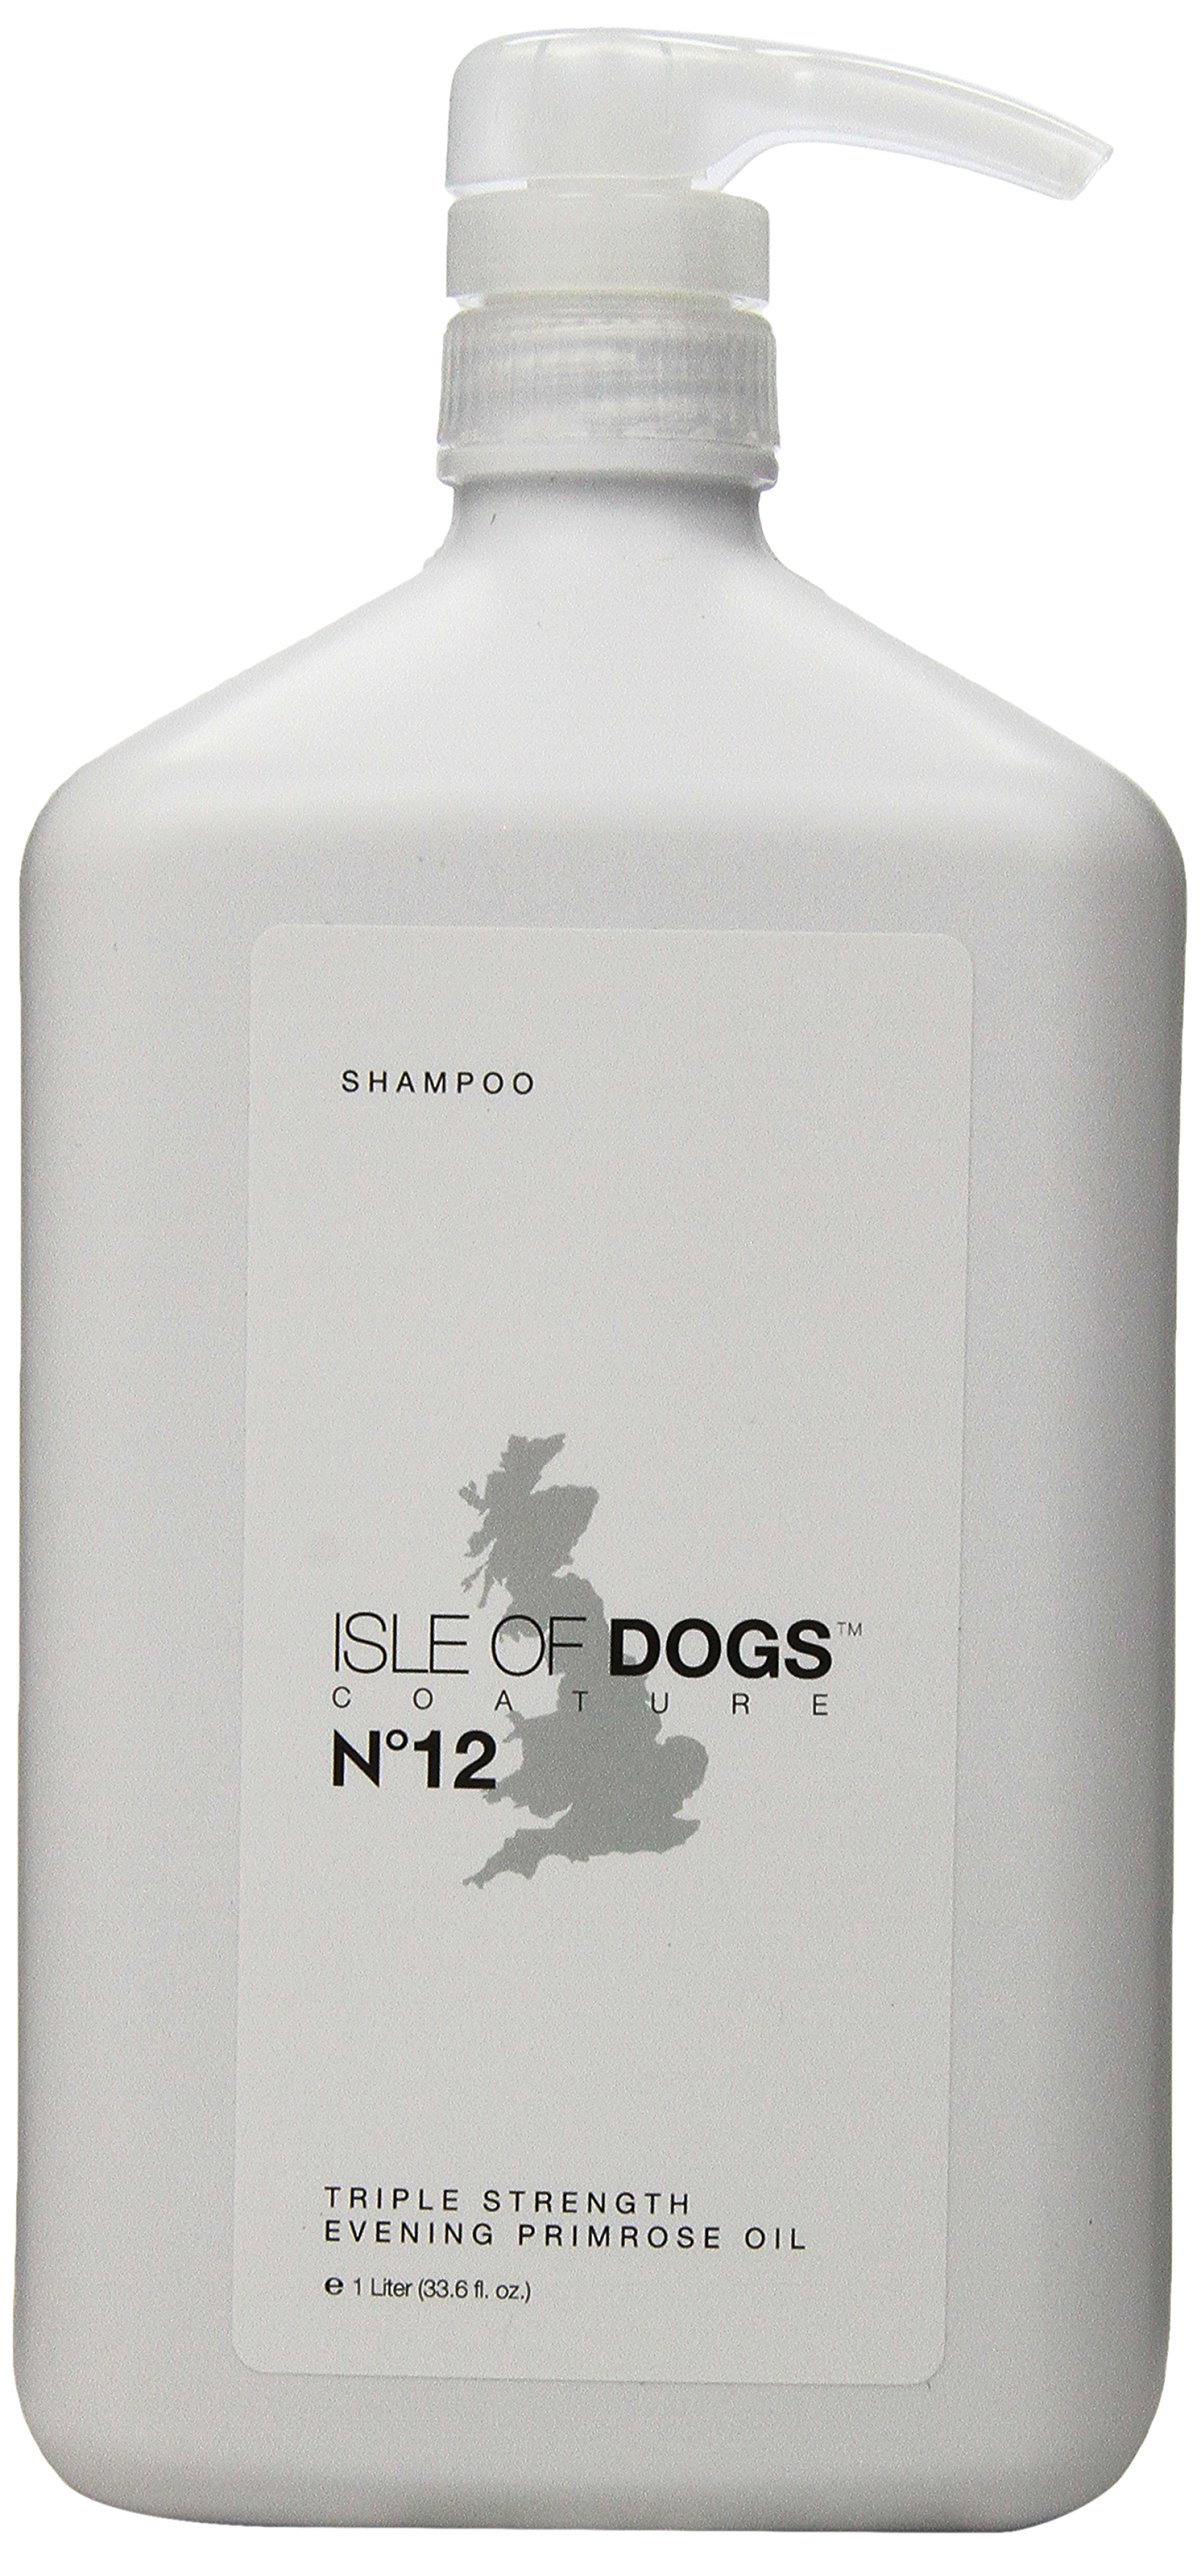 Isle of Dogs Coature No. 12 Veterinary Grade Evening Primrose Oil Dog Shampoo for itchy or Sensitive Skin, 1 liter